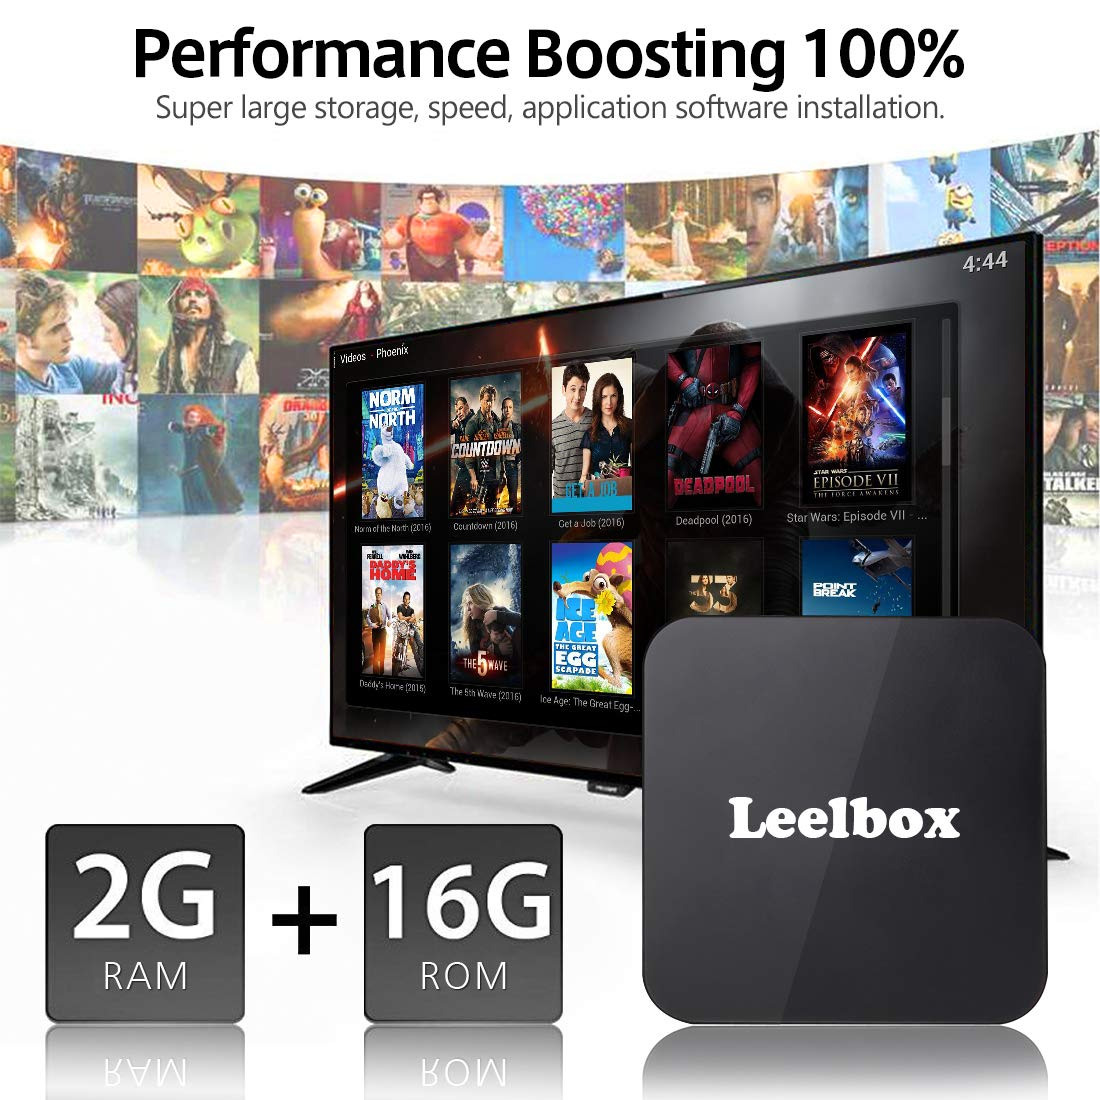 Android 8.1 TV Box, 2018 Leelbox Q2 Android Box Quad Core with 2GB RAM 16GB ROM, 2.4G Voice Remote Control Included, Support WiFi/3D/4K/H.265 by Leelbox (Image #4)